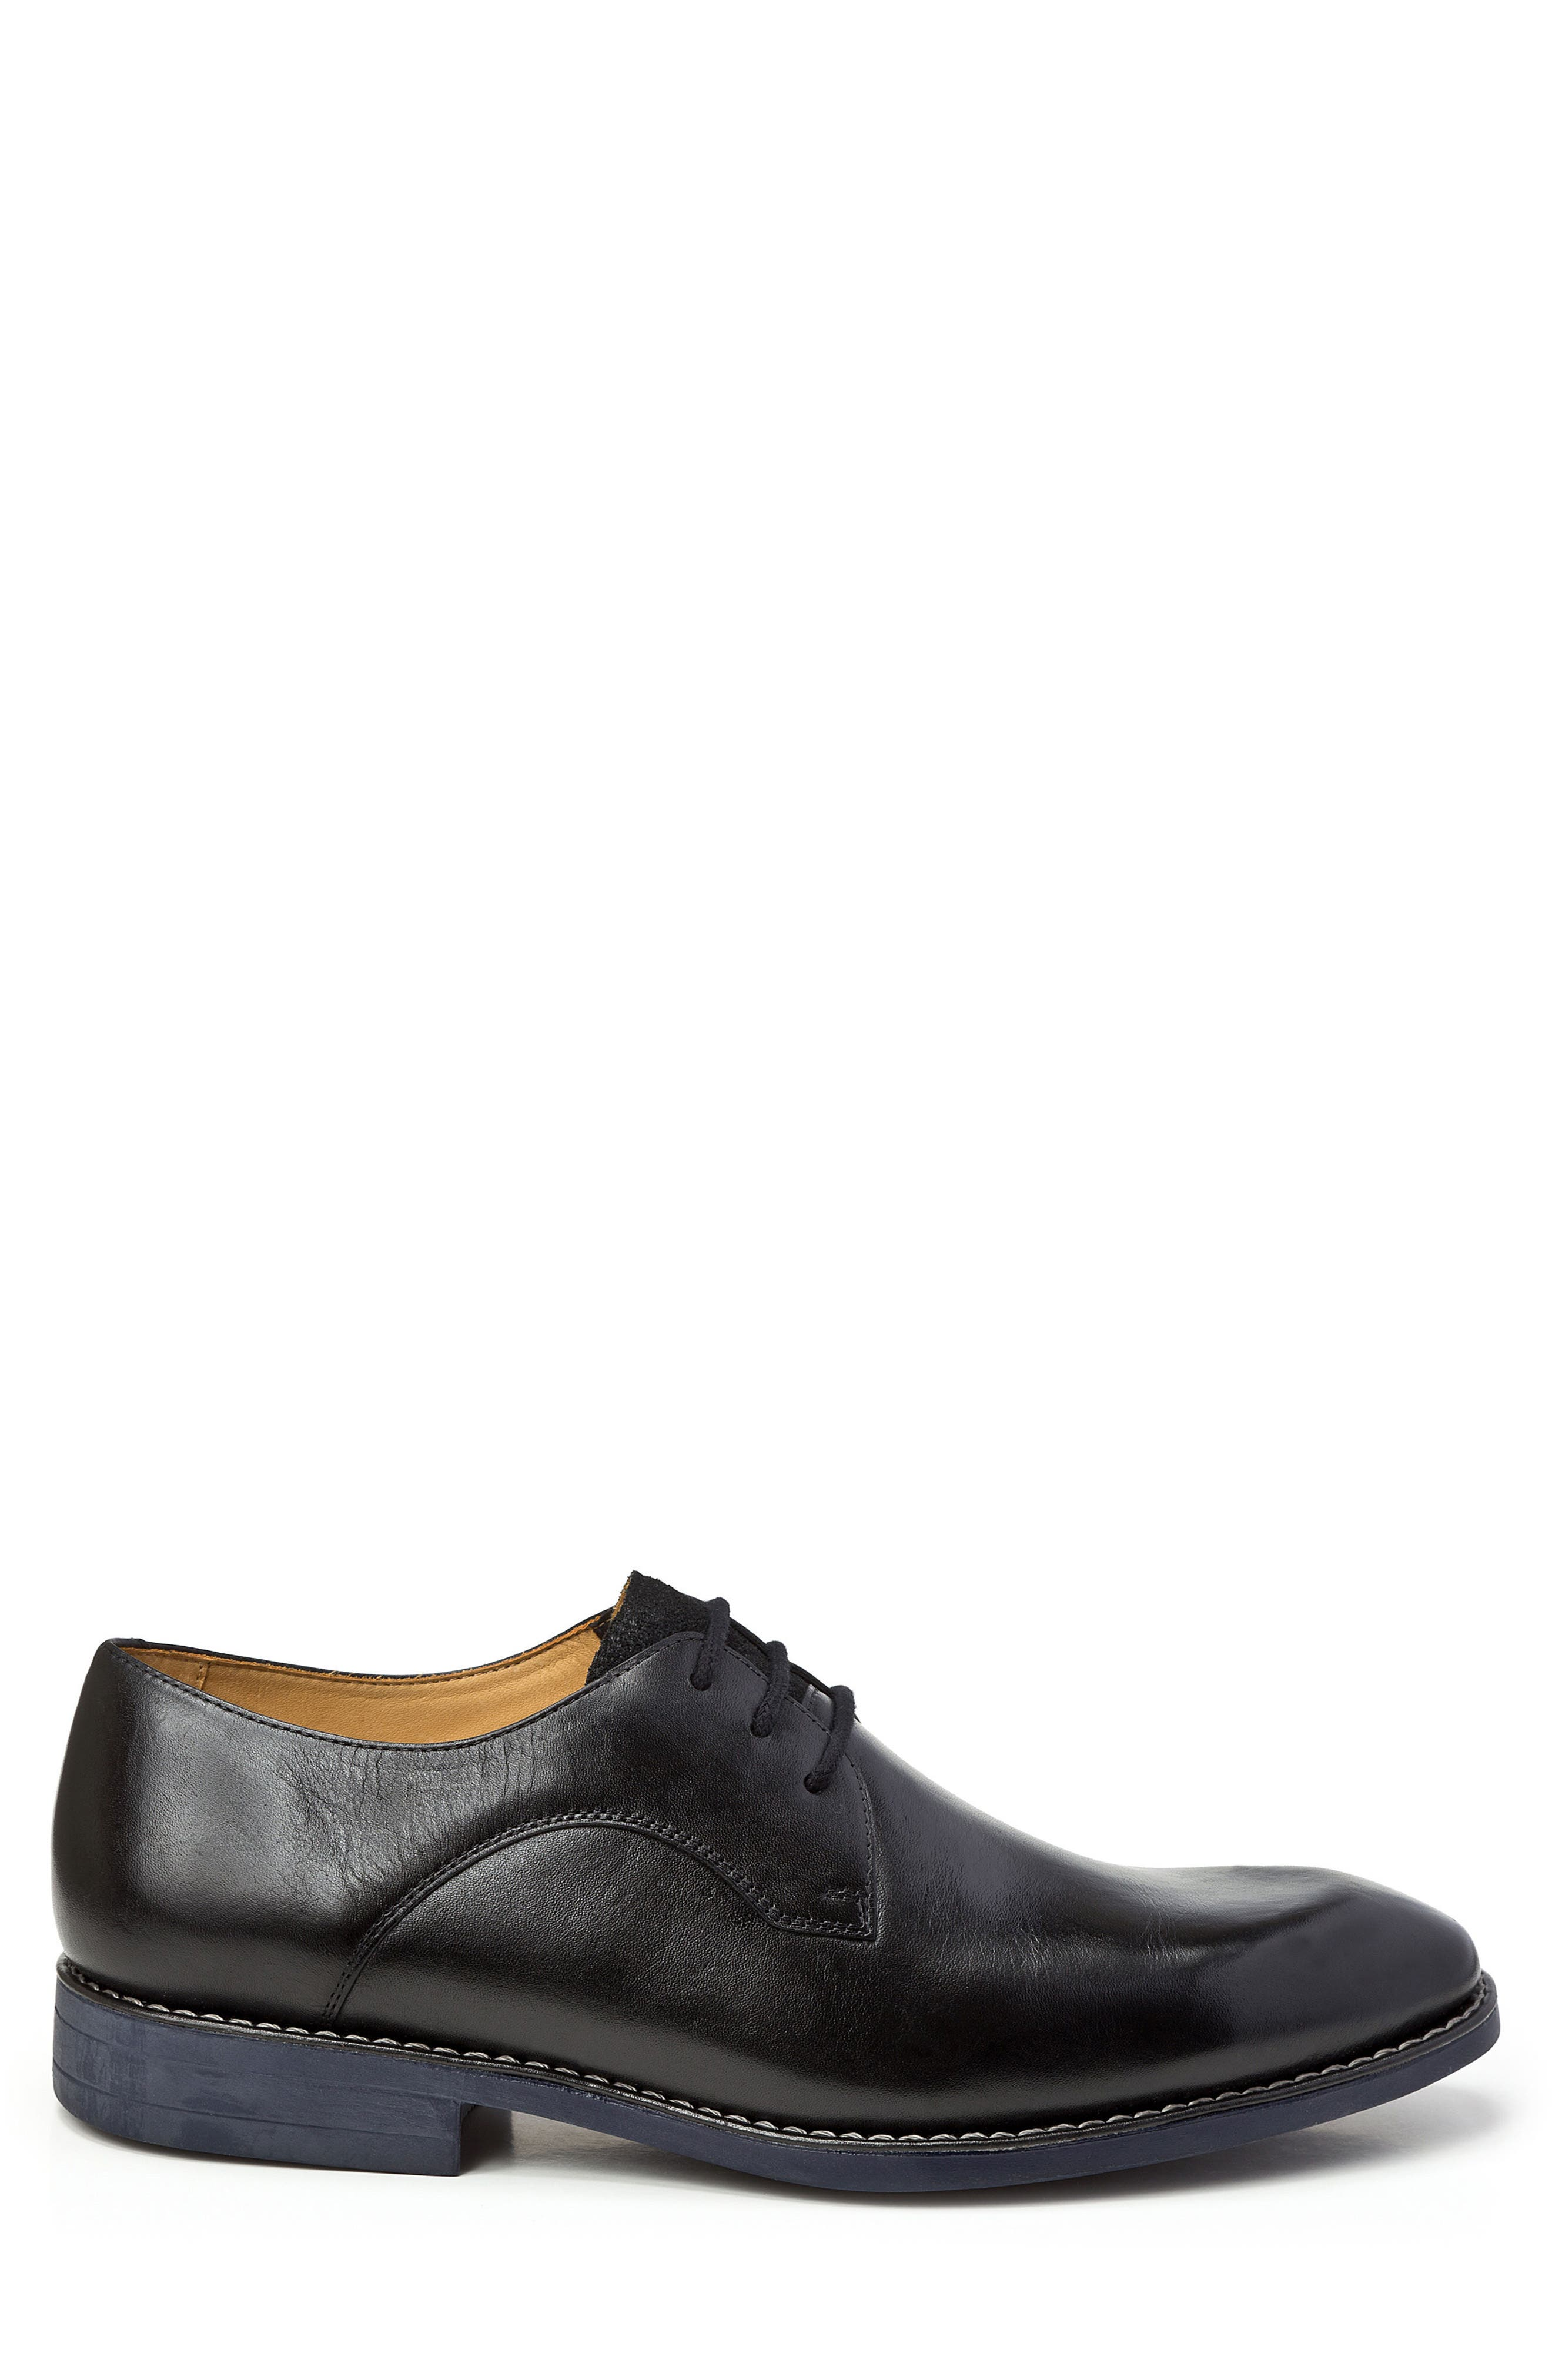 SANDRO MOSCOLONI, Garret Plain Toe Derby, Alternate thumbnail 3, color, BLACK LEATHER